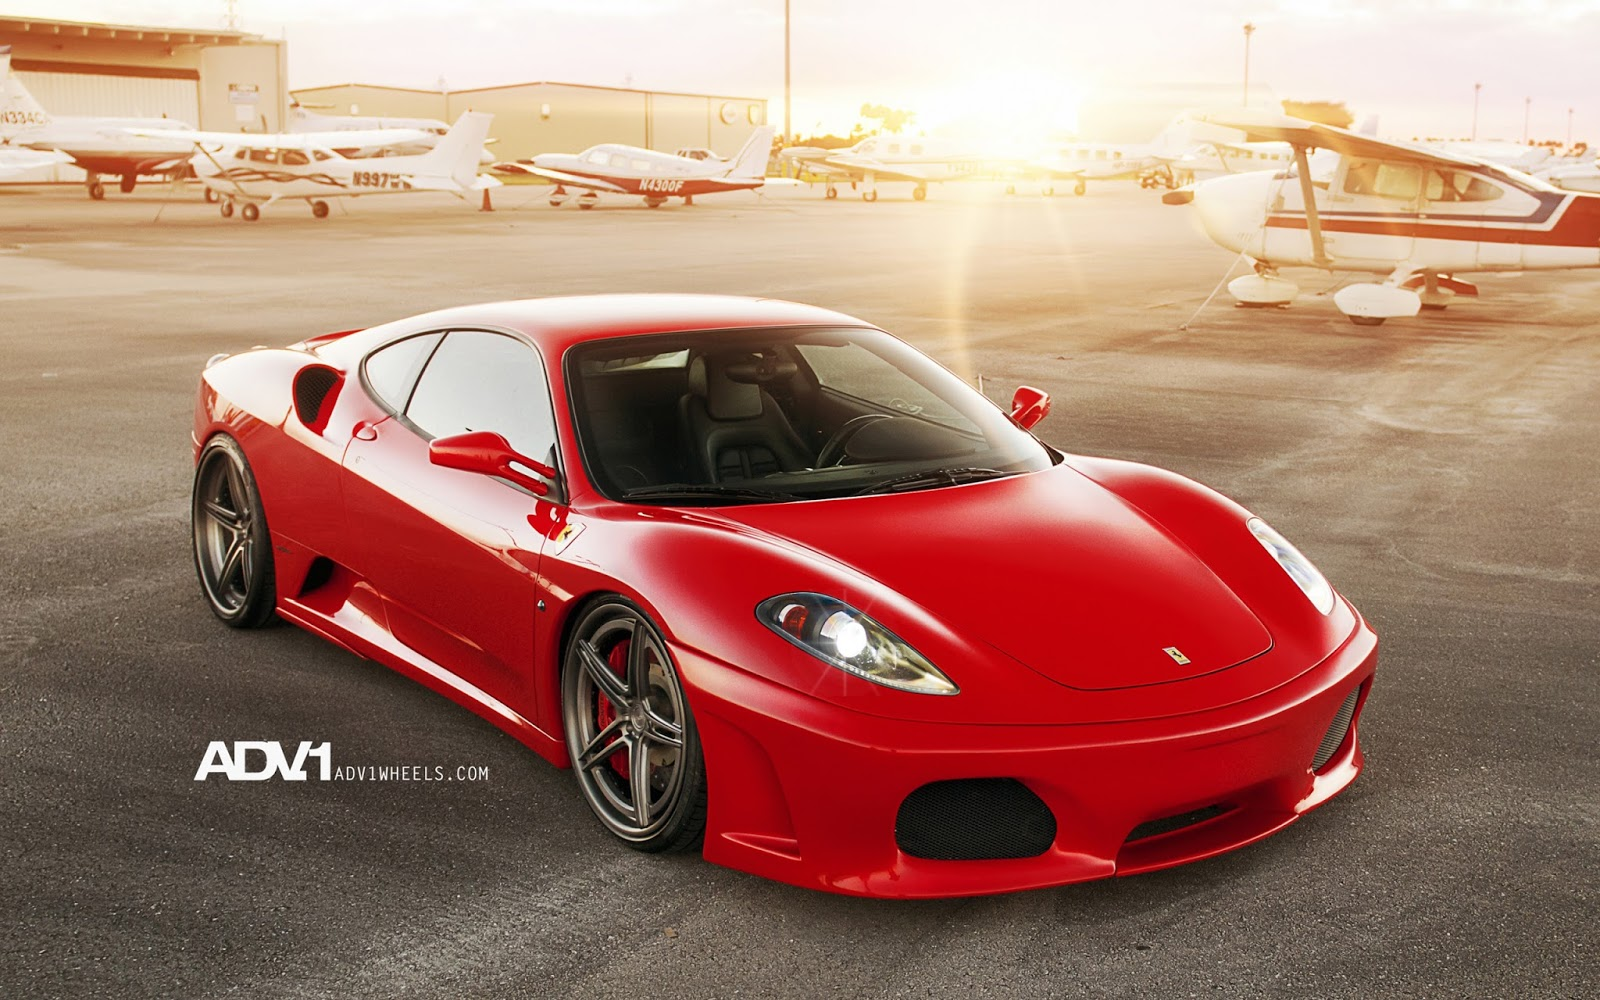 Lynettes Crafts Ferrari F430 HD Wallpaper For IPhone